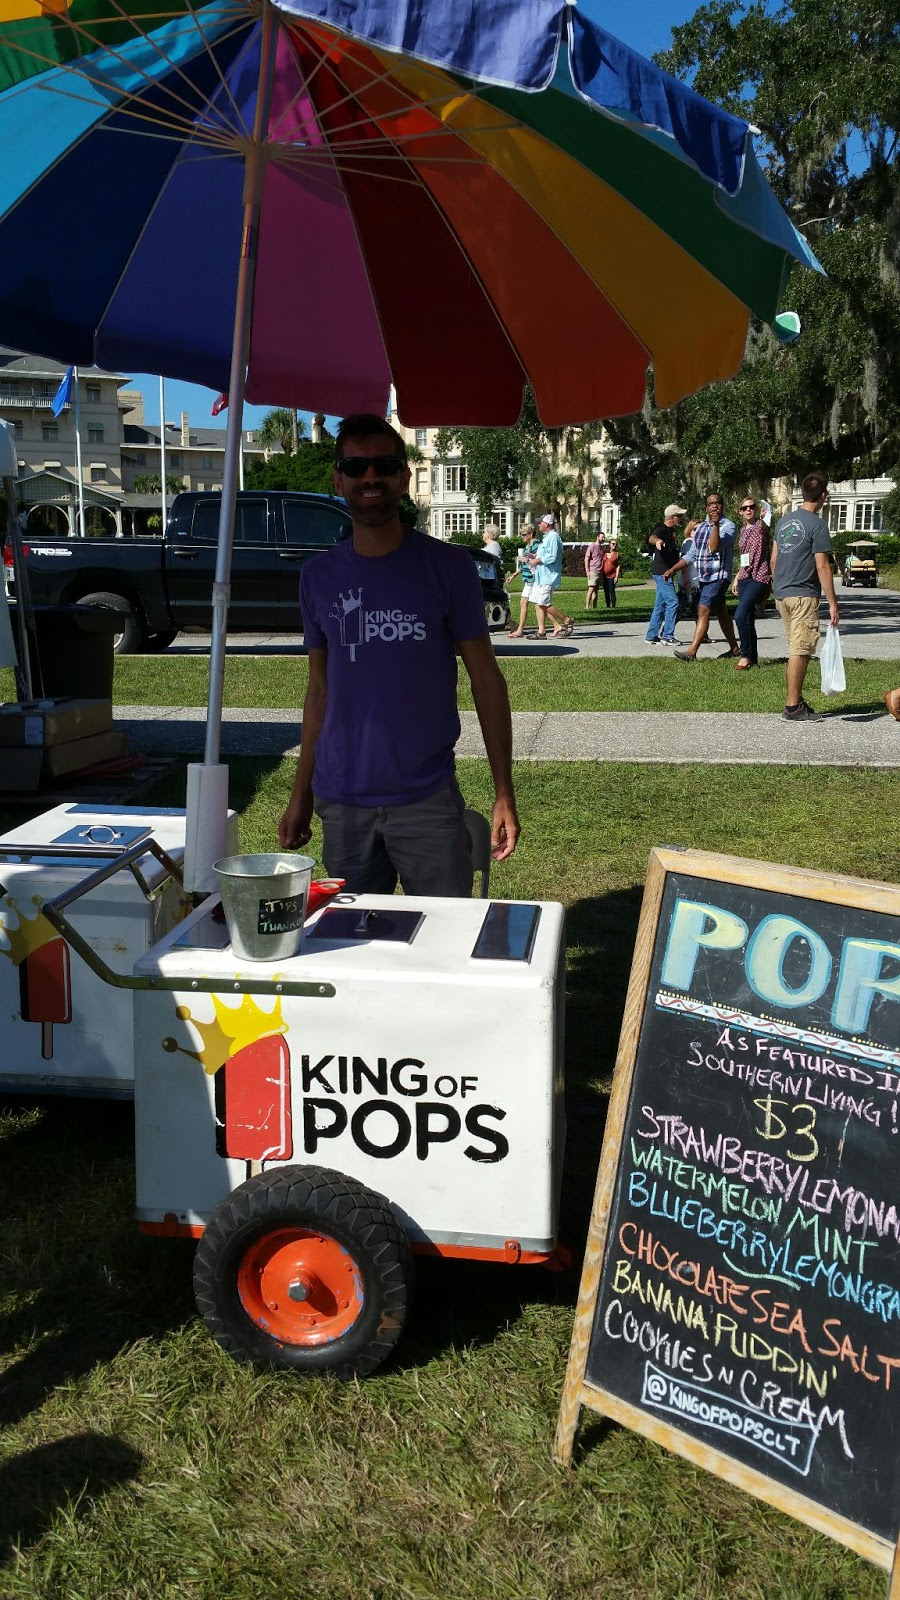 King of Pops Shrimp and Grits Festival Jekyll Island 2015